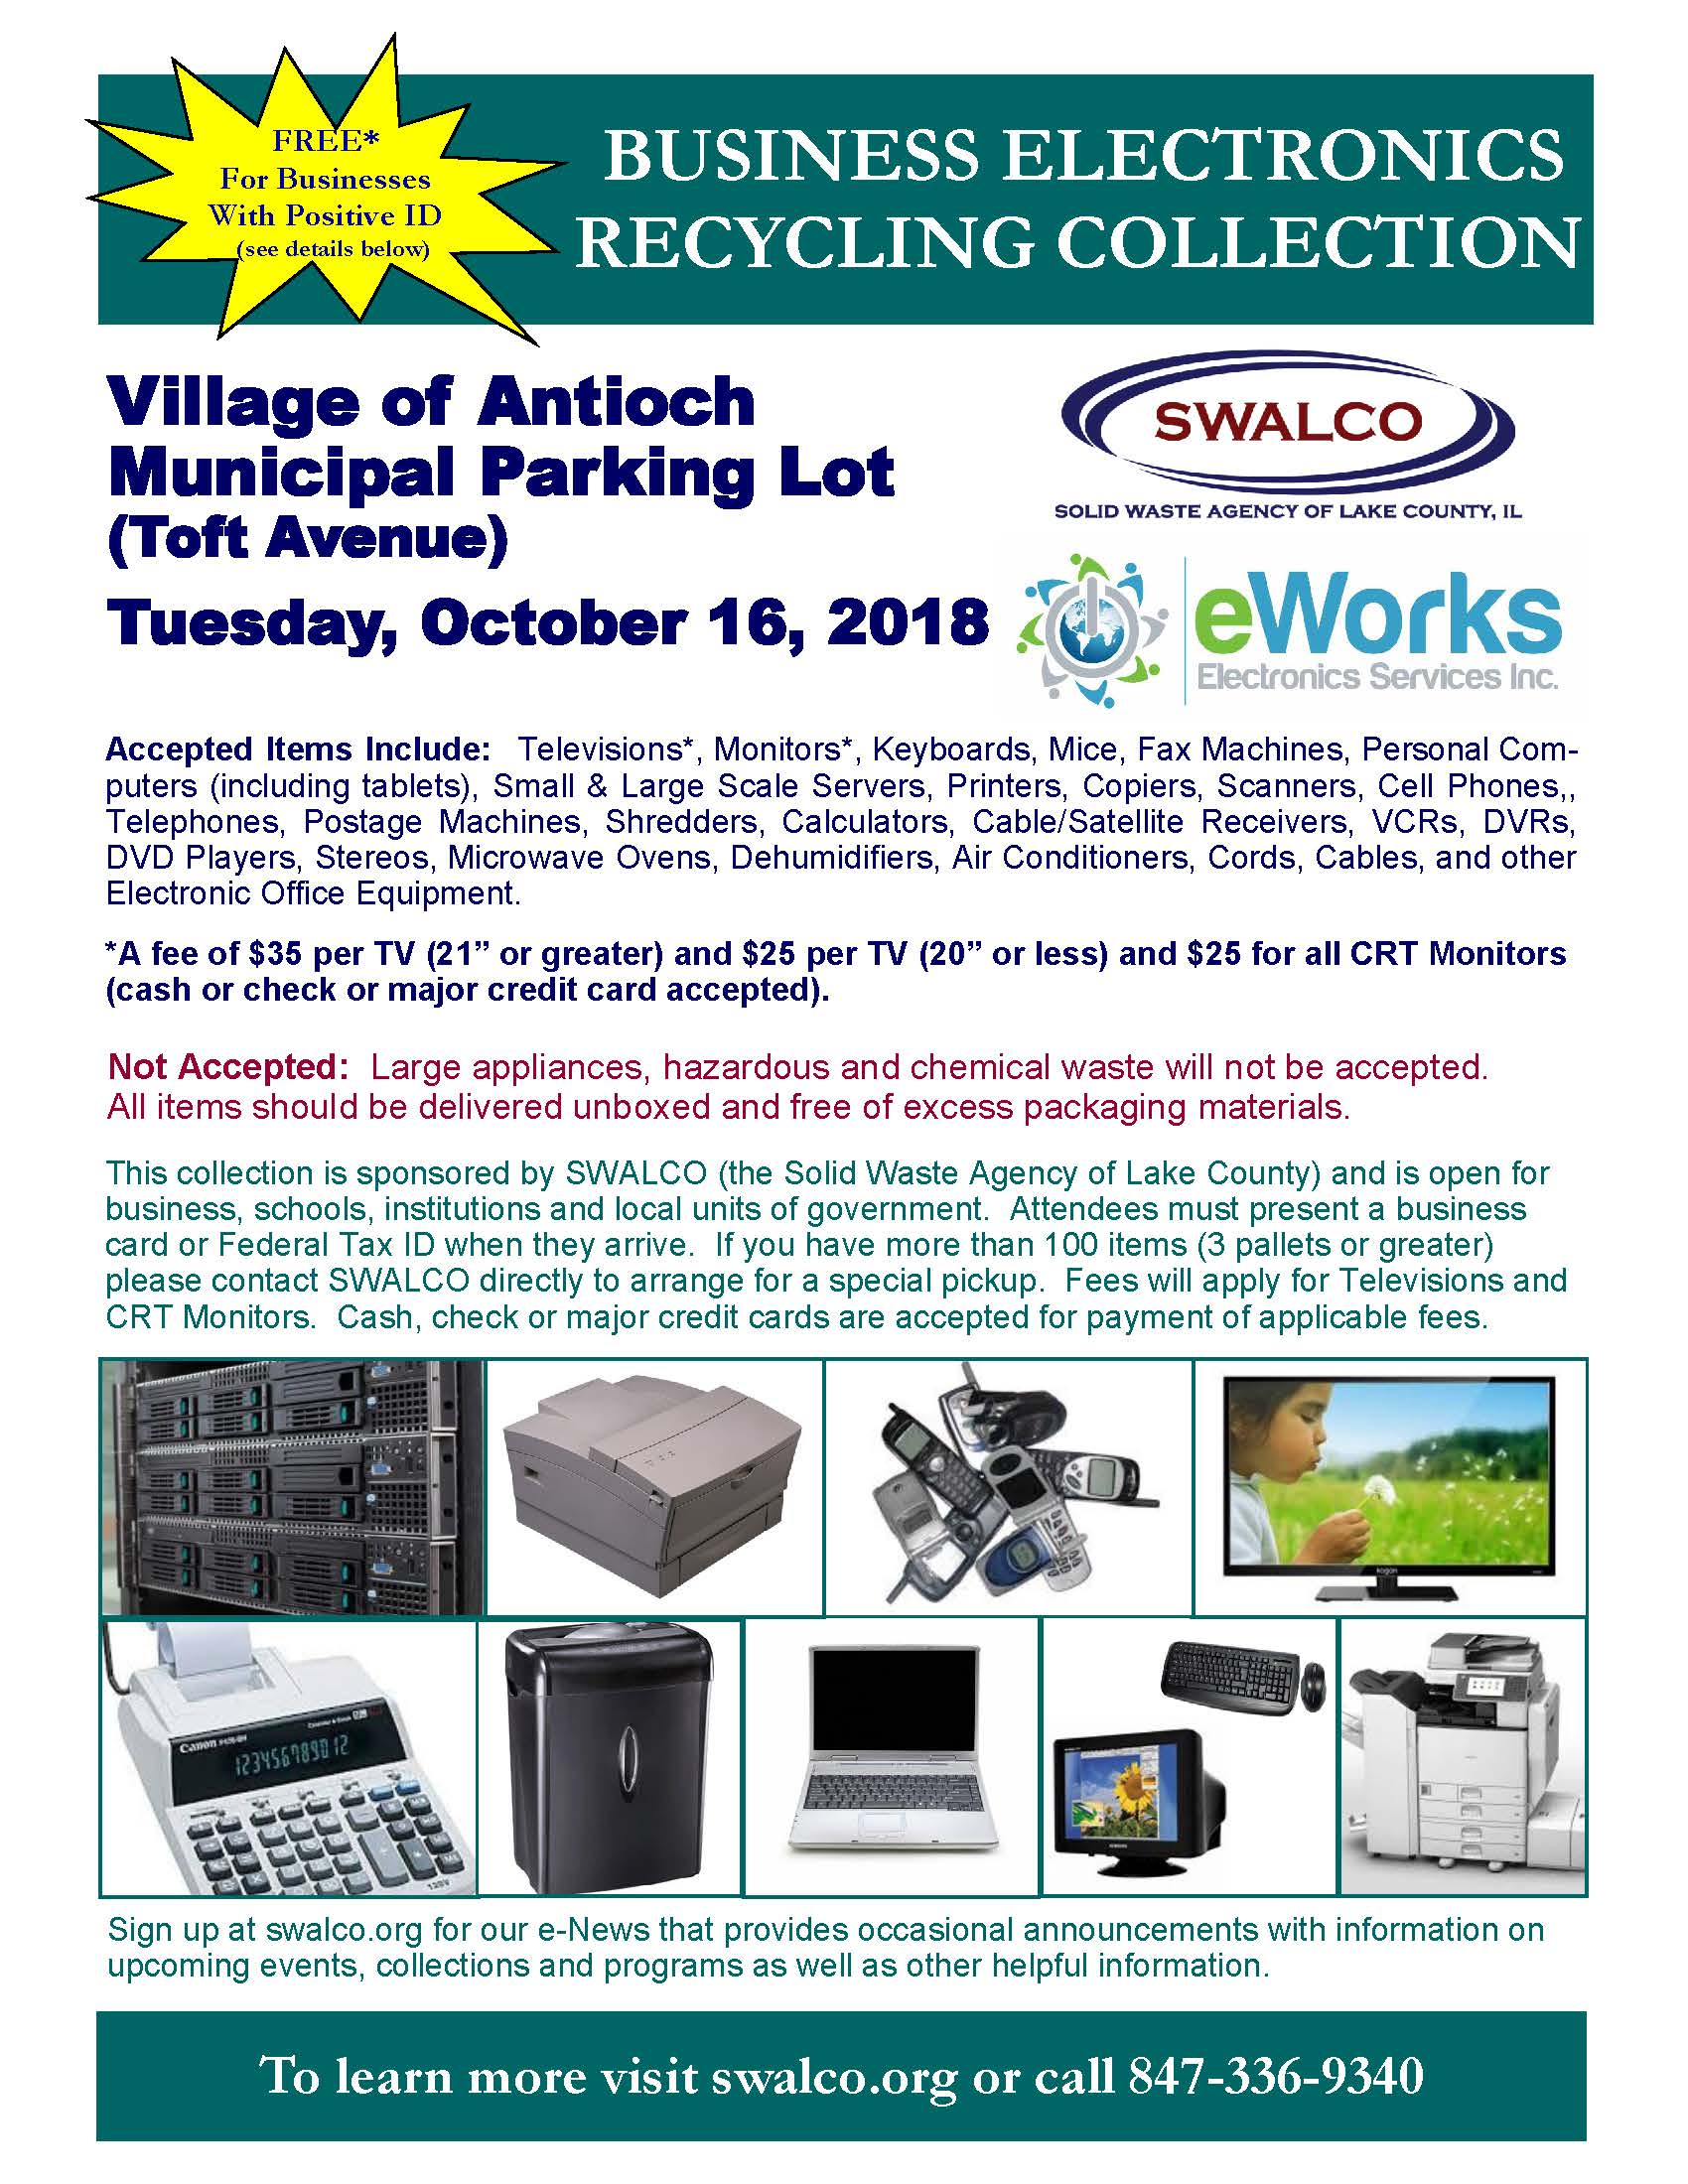 Electronics E-Works Village of Antioch, October 16 2018